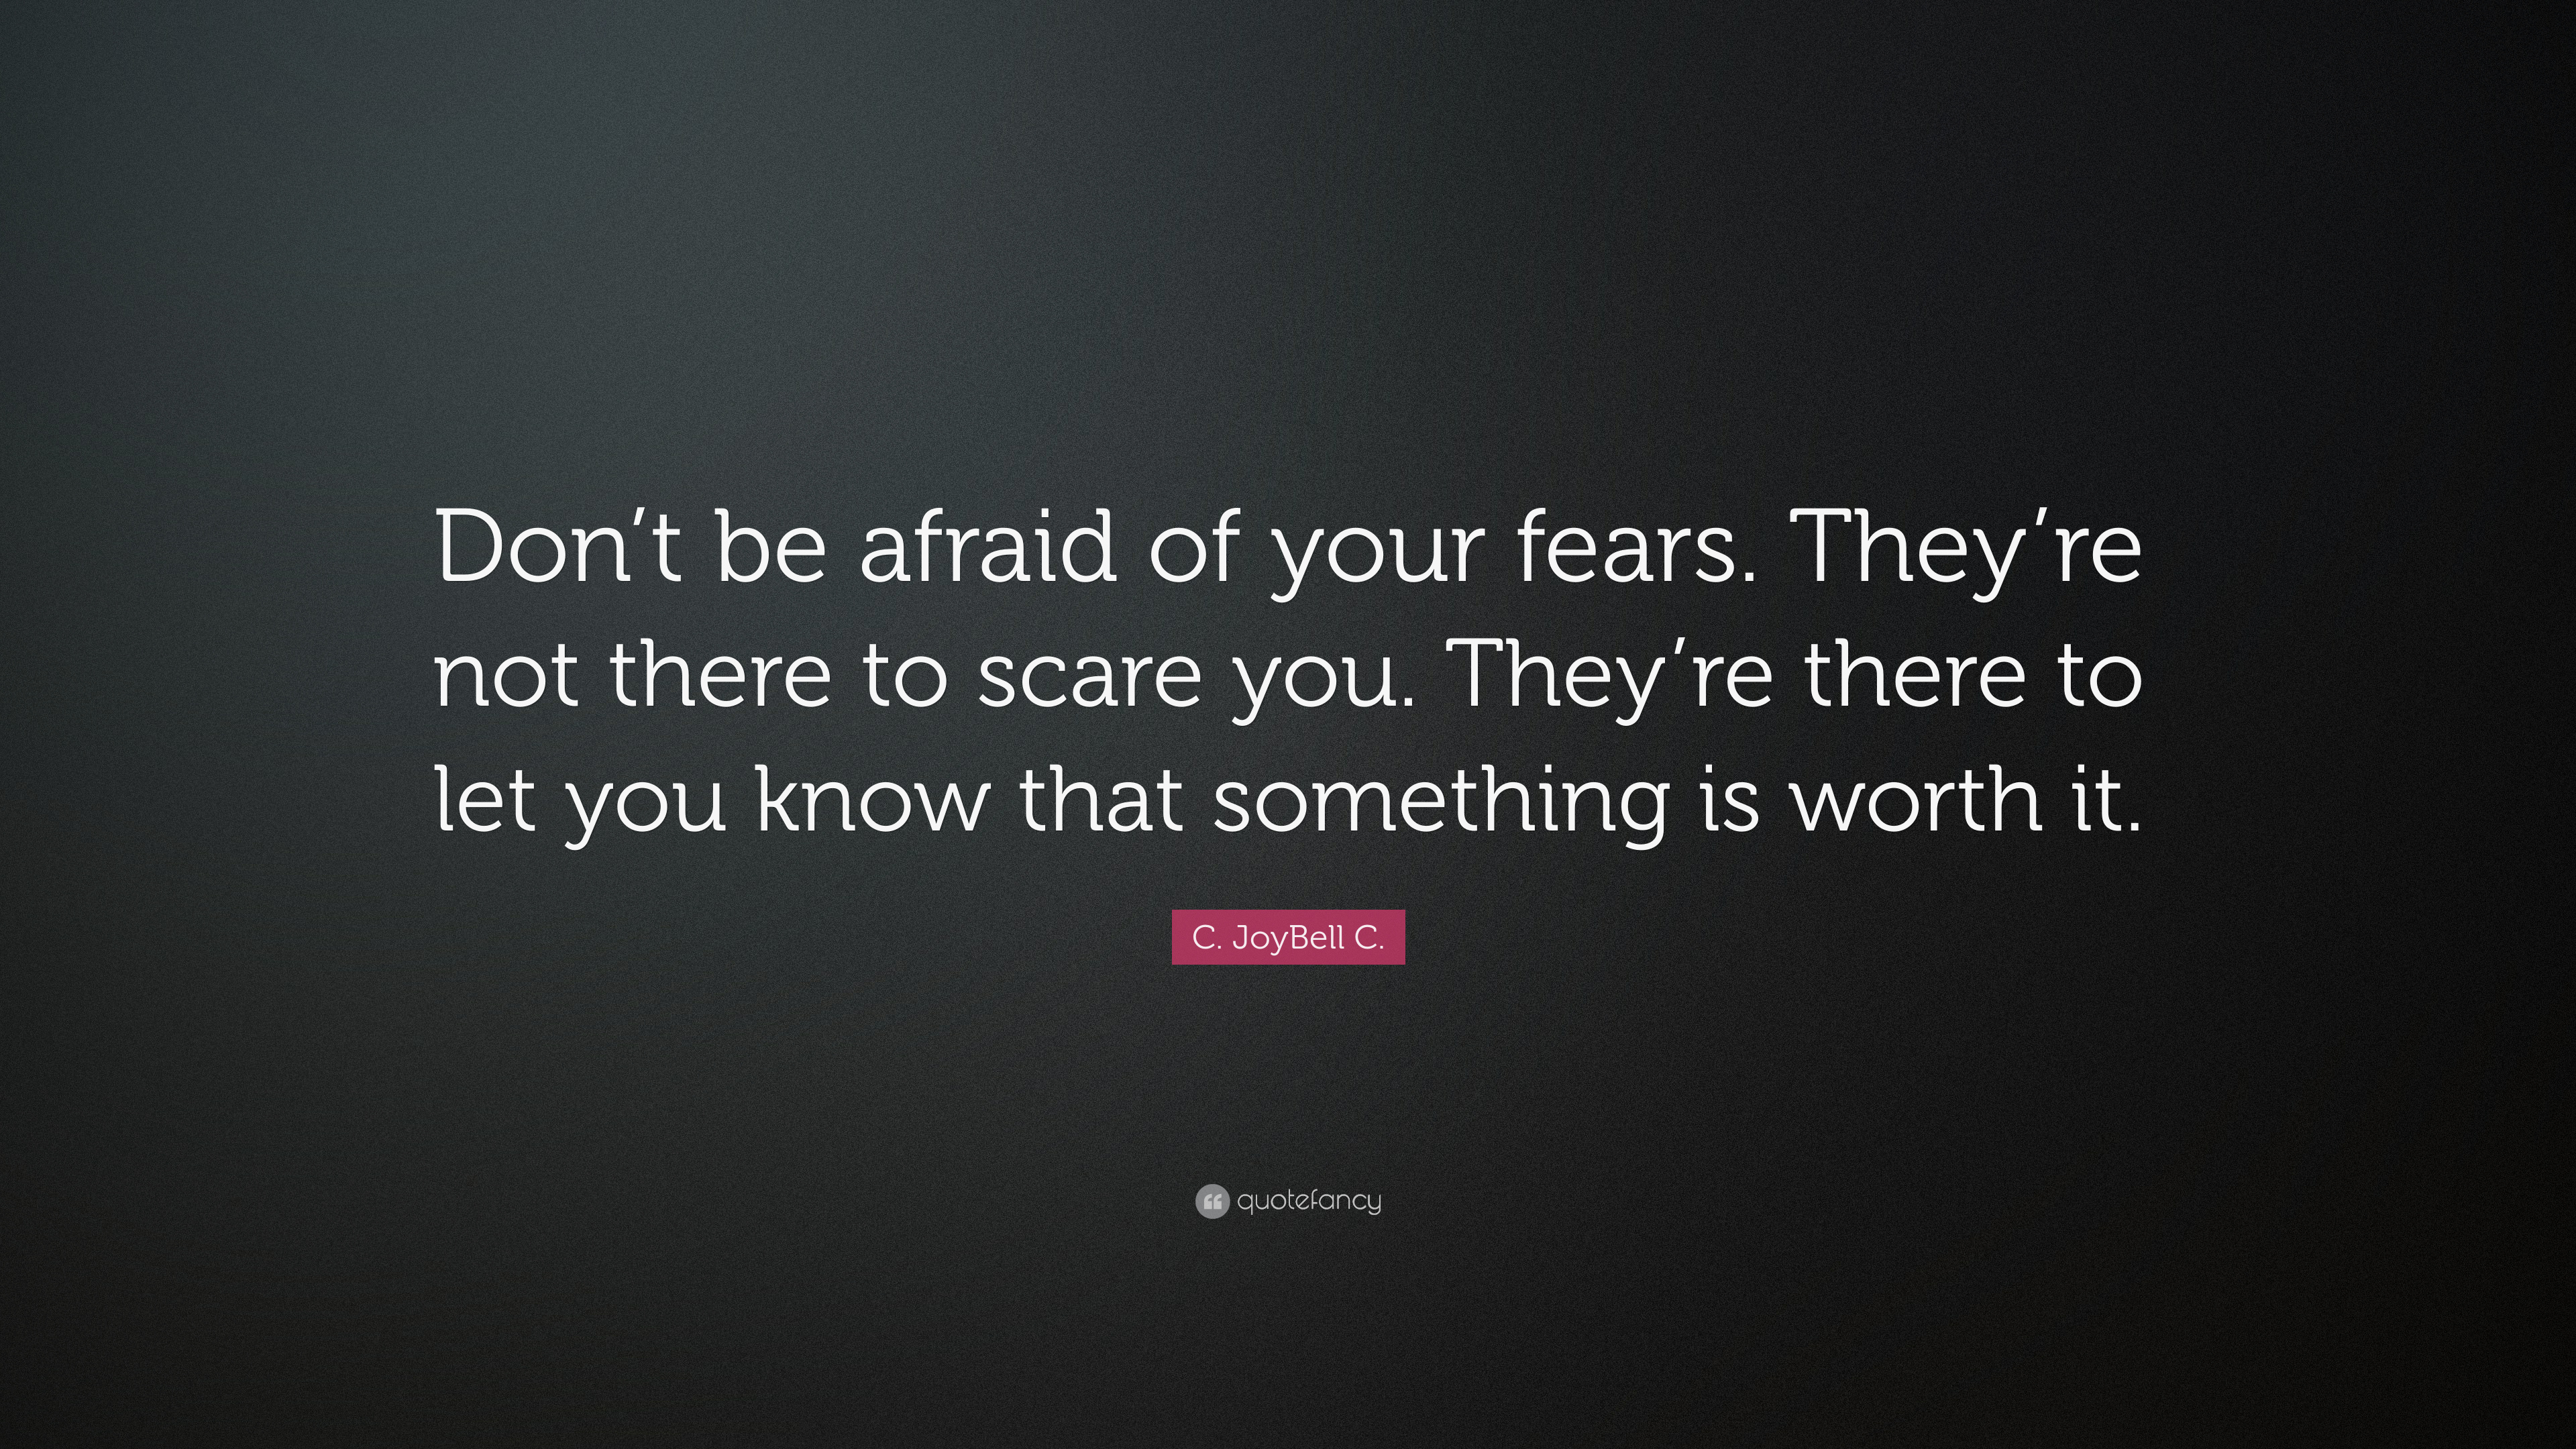 C Joybell C Quote Don T Be Afraid Of Your Fears They Re Not There To Scare You They Re